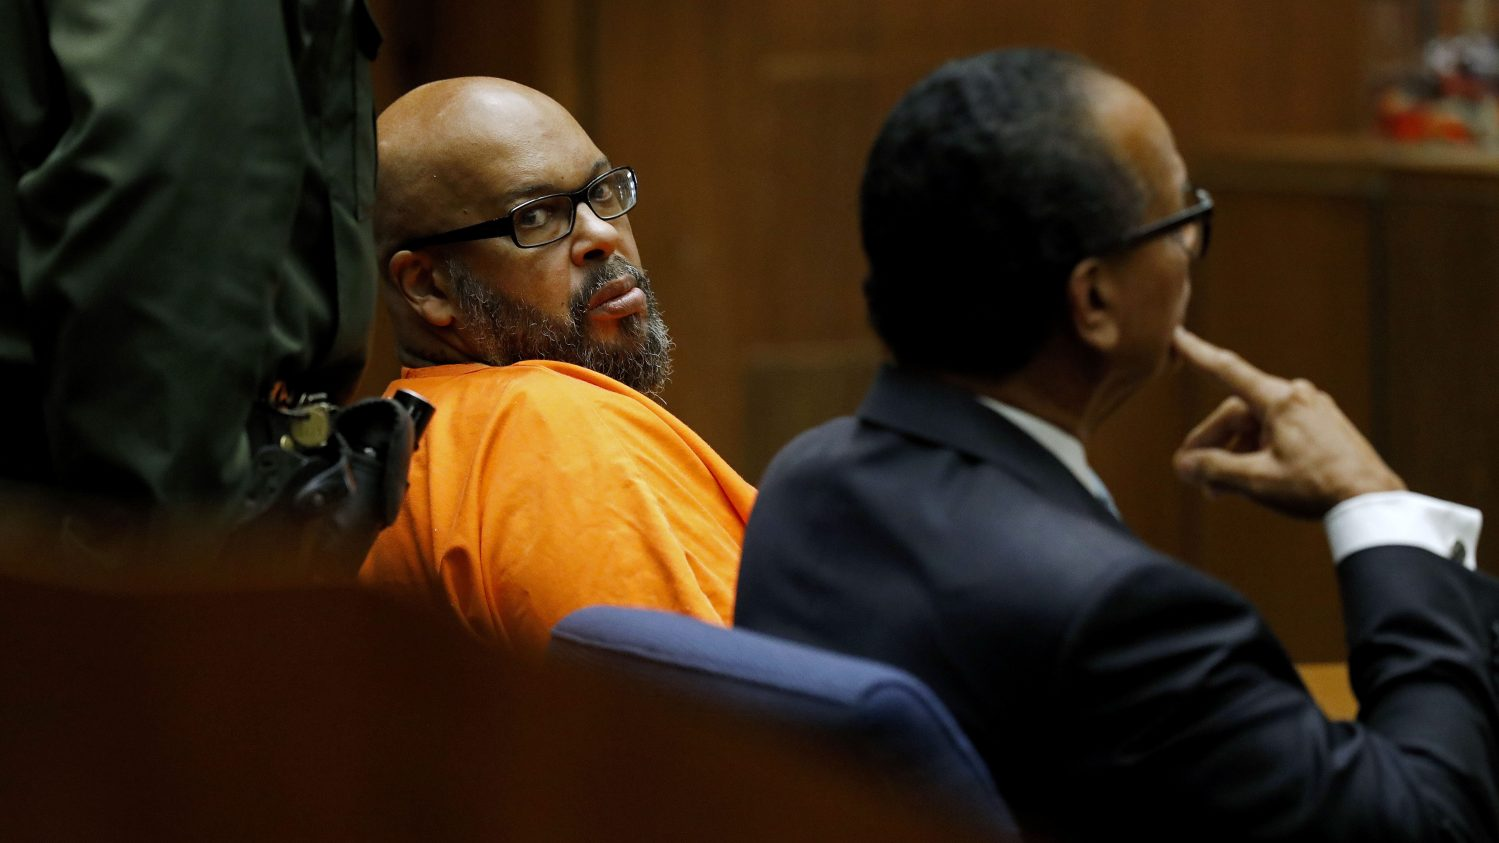 For Death Row's Suge Knight — violent bully, music executive